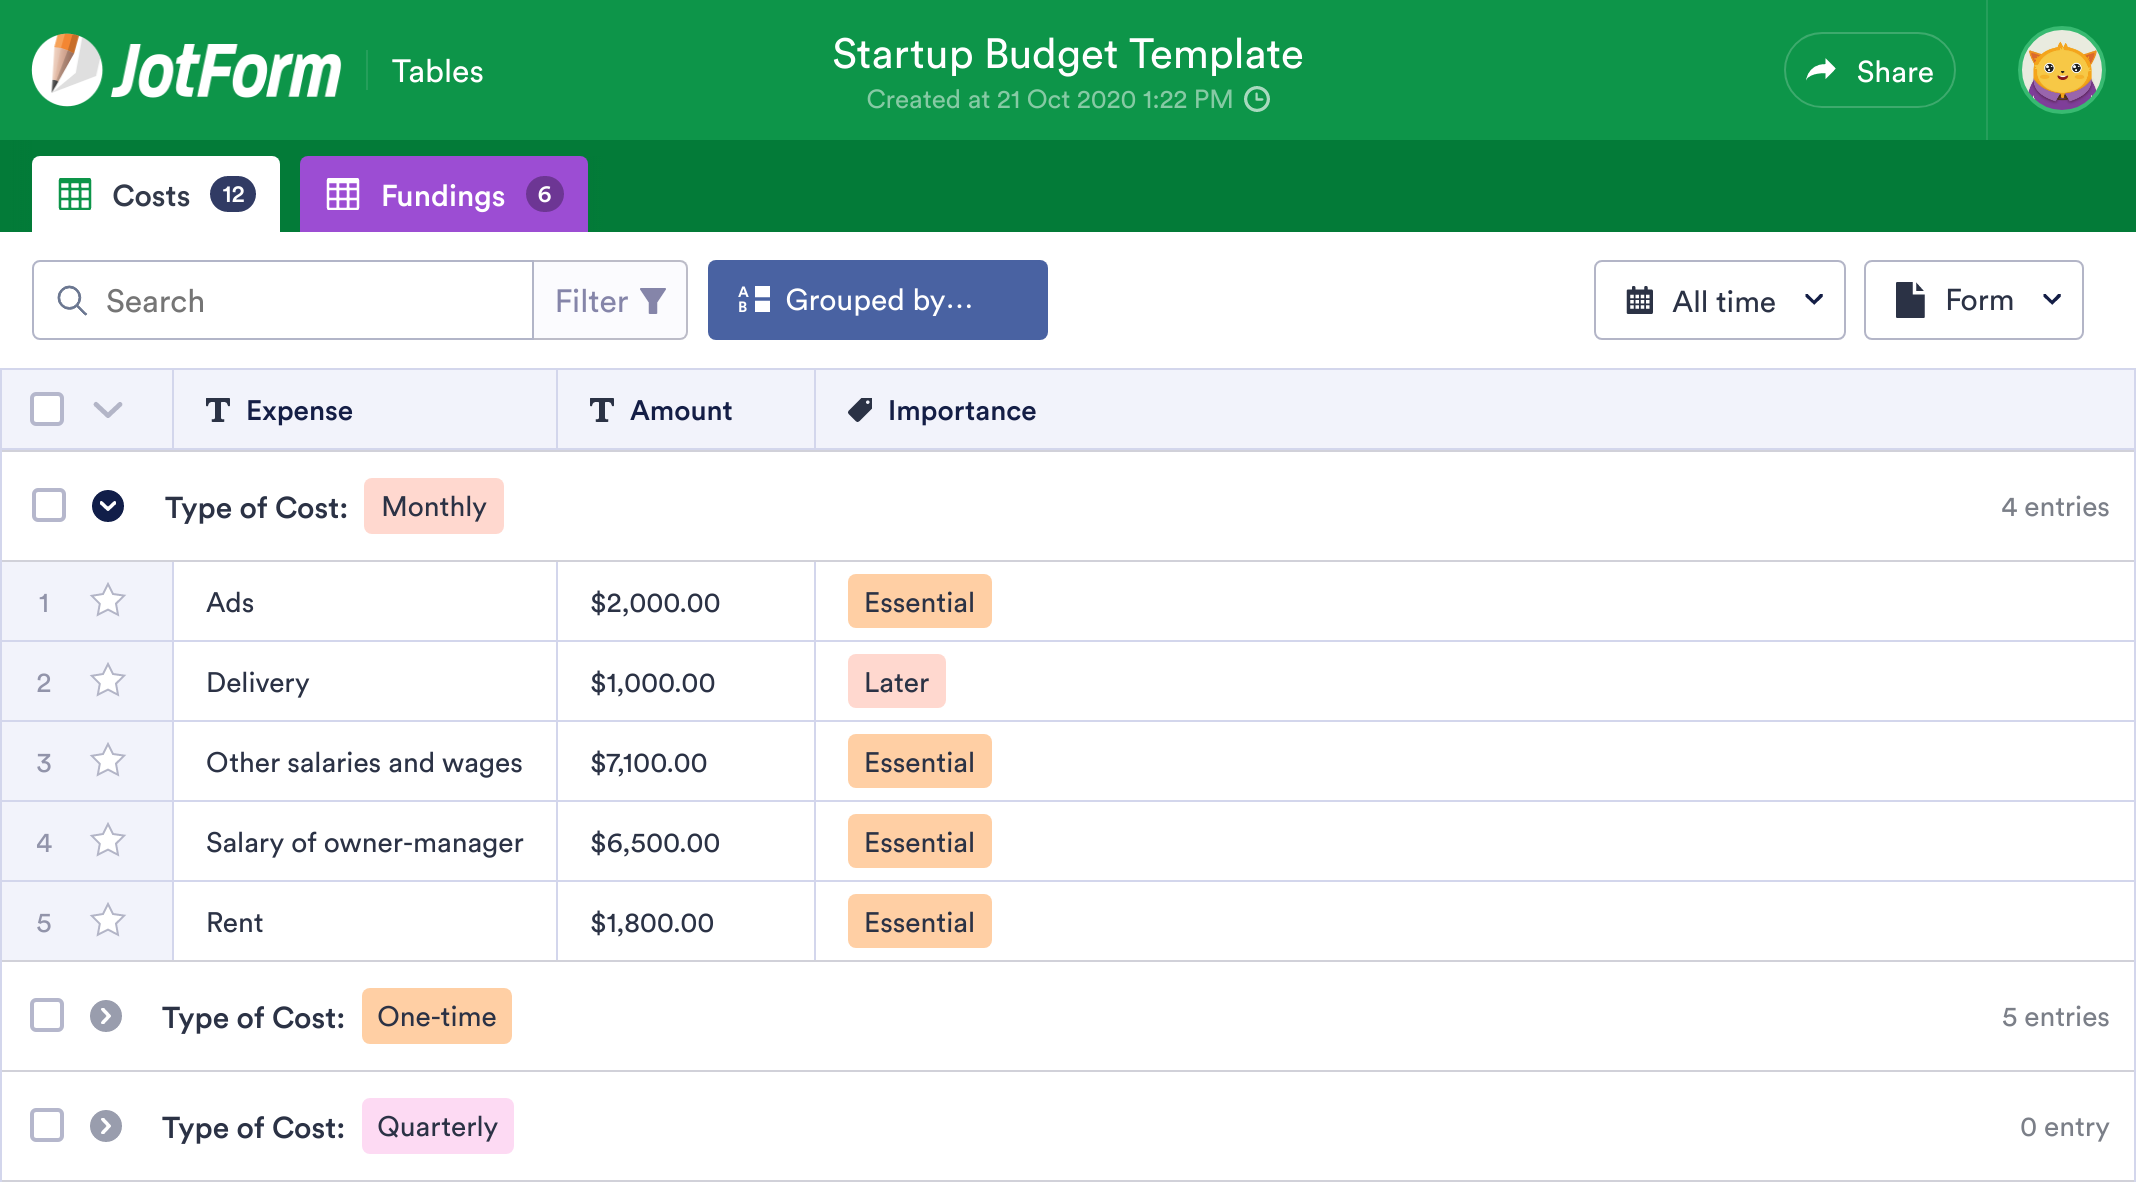 Startup Budget Template